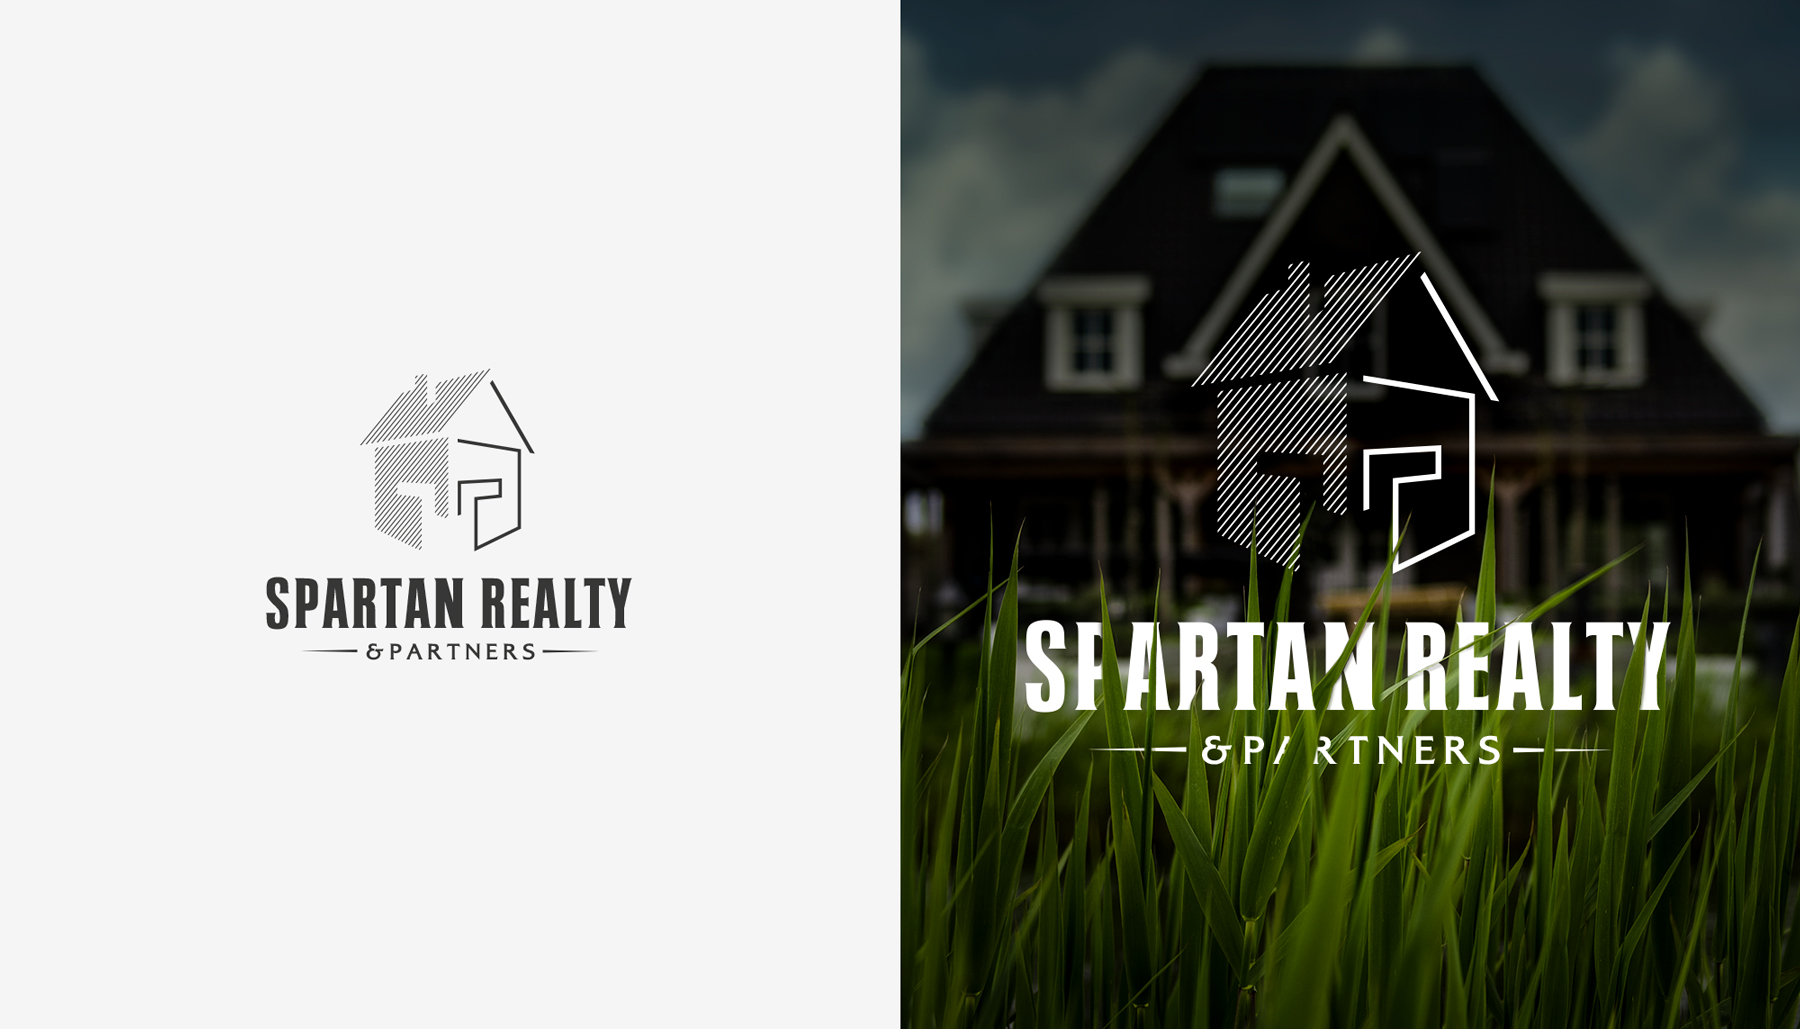 Paul_Molina_Graphic-Design_Spartan_Realty_Logo3